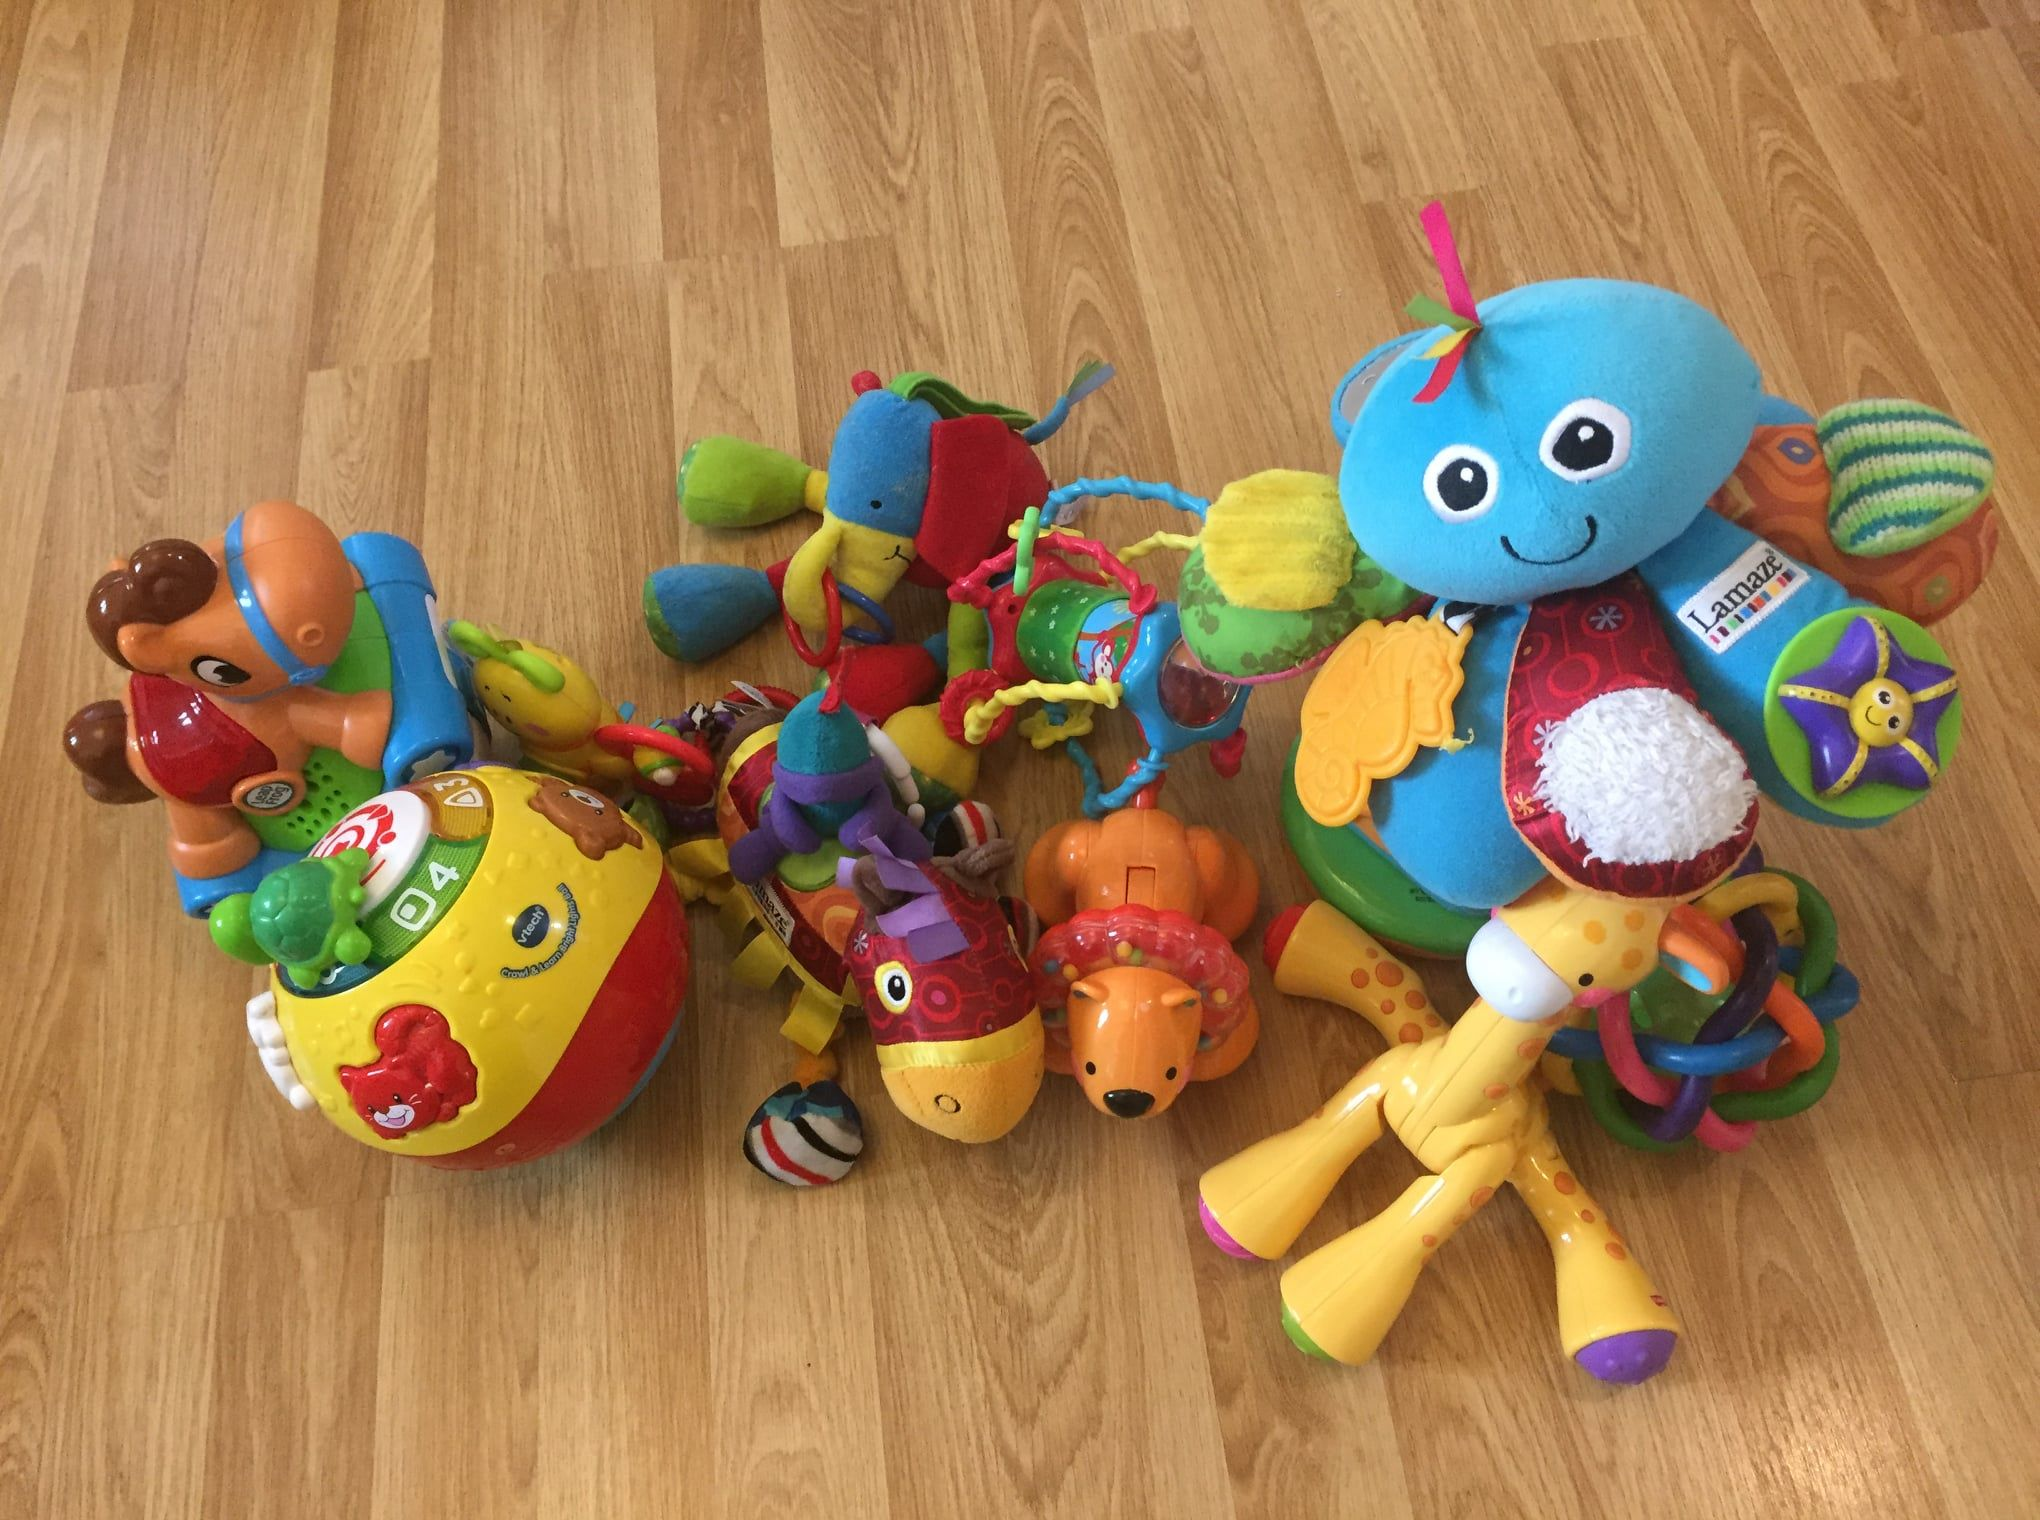 Toys donated